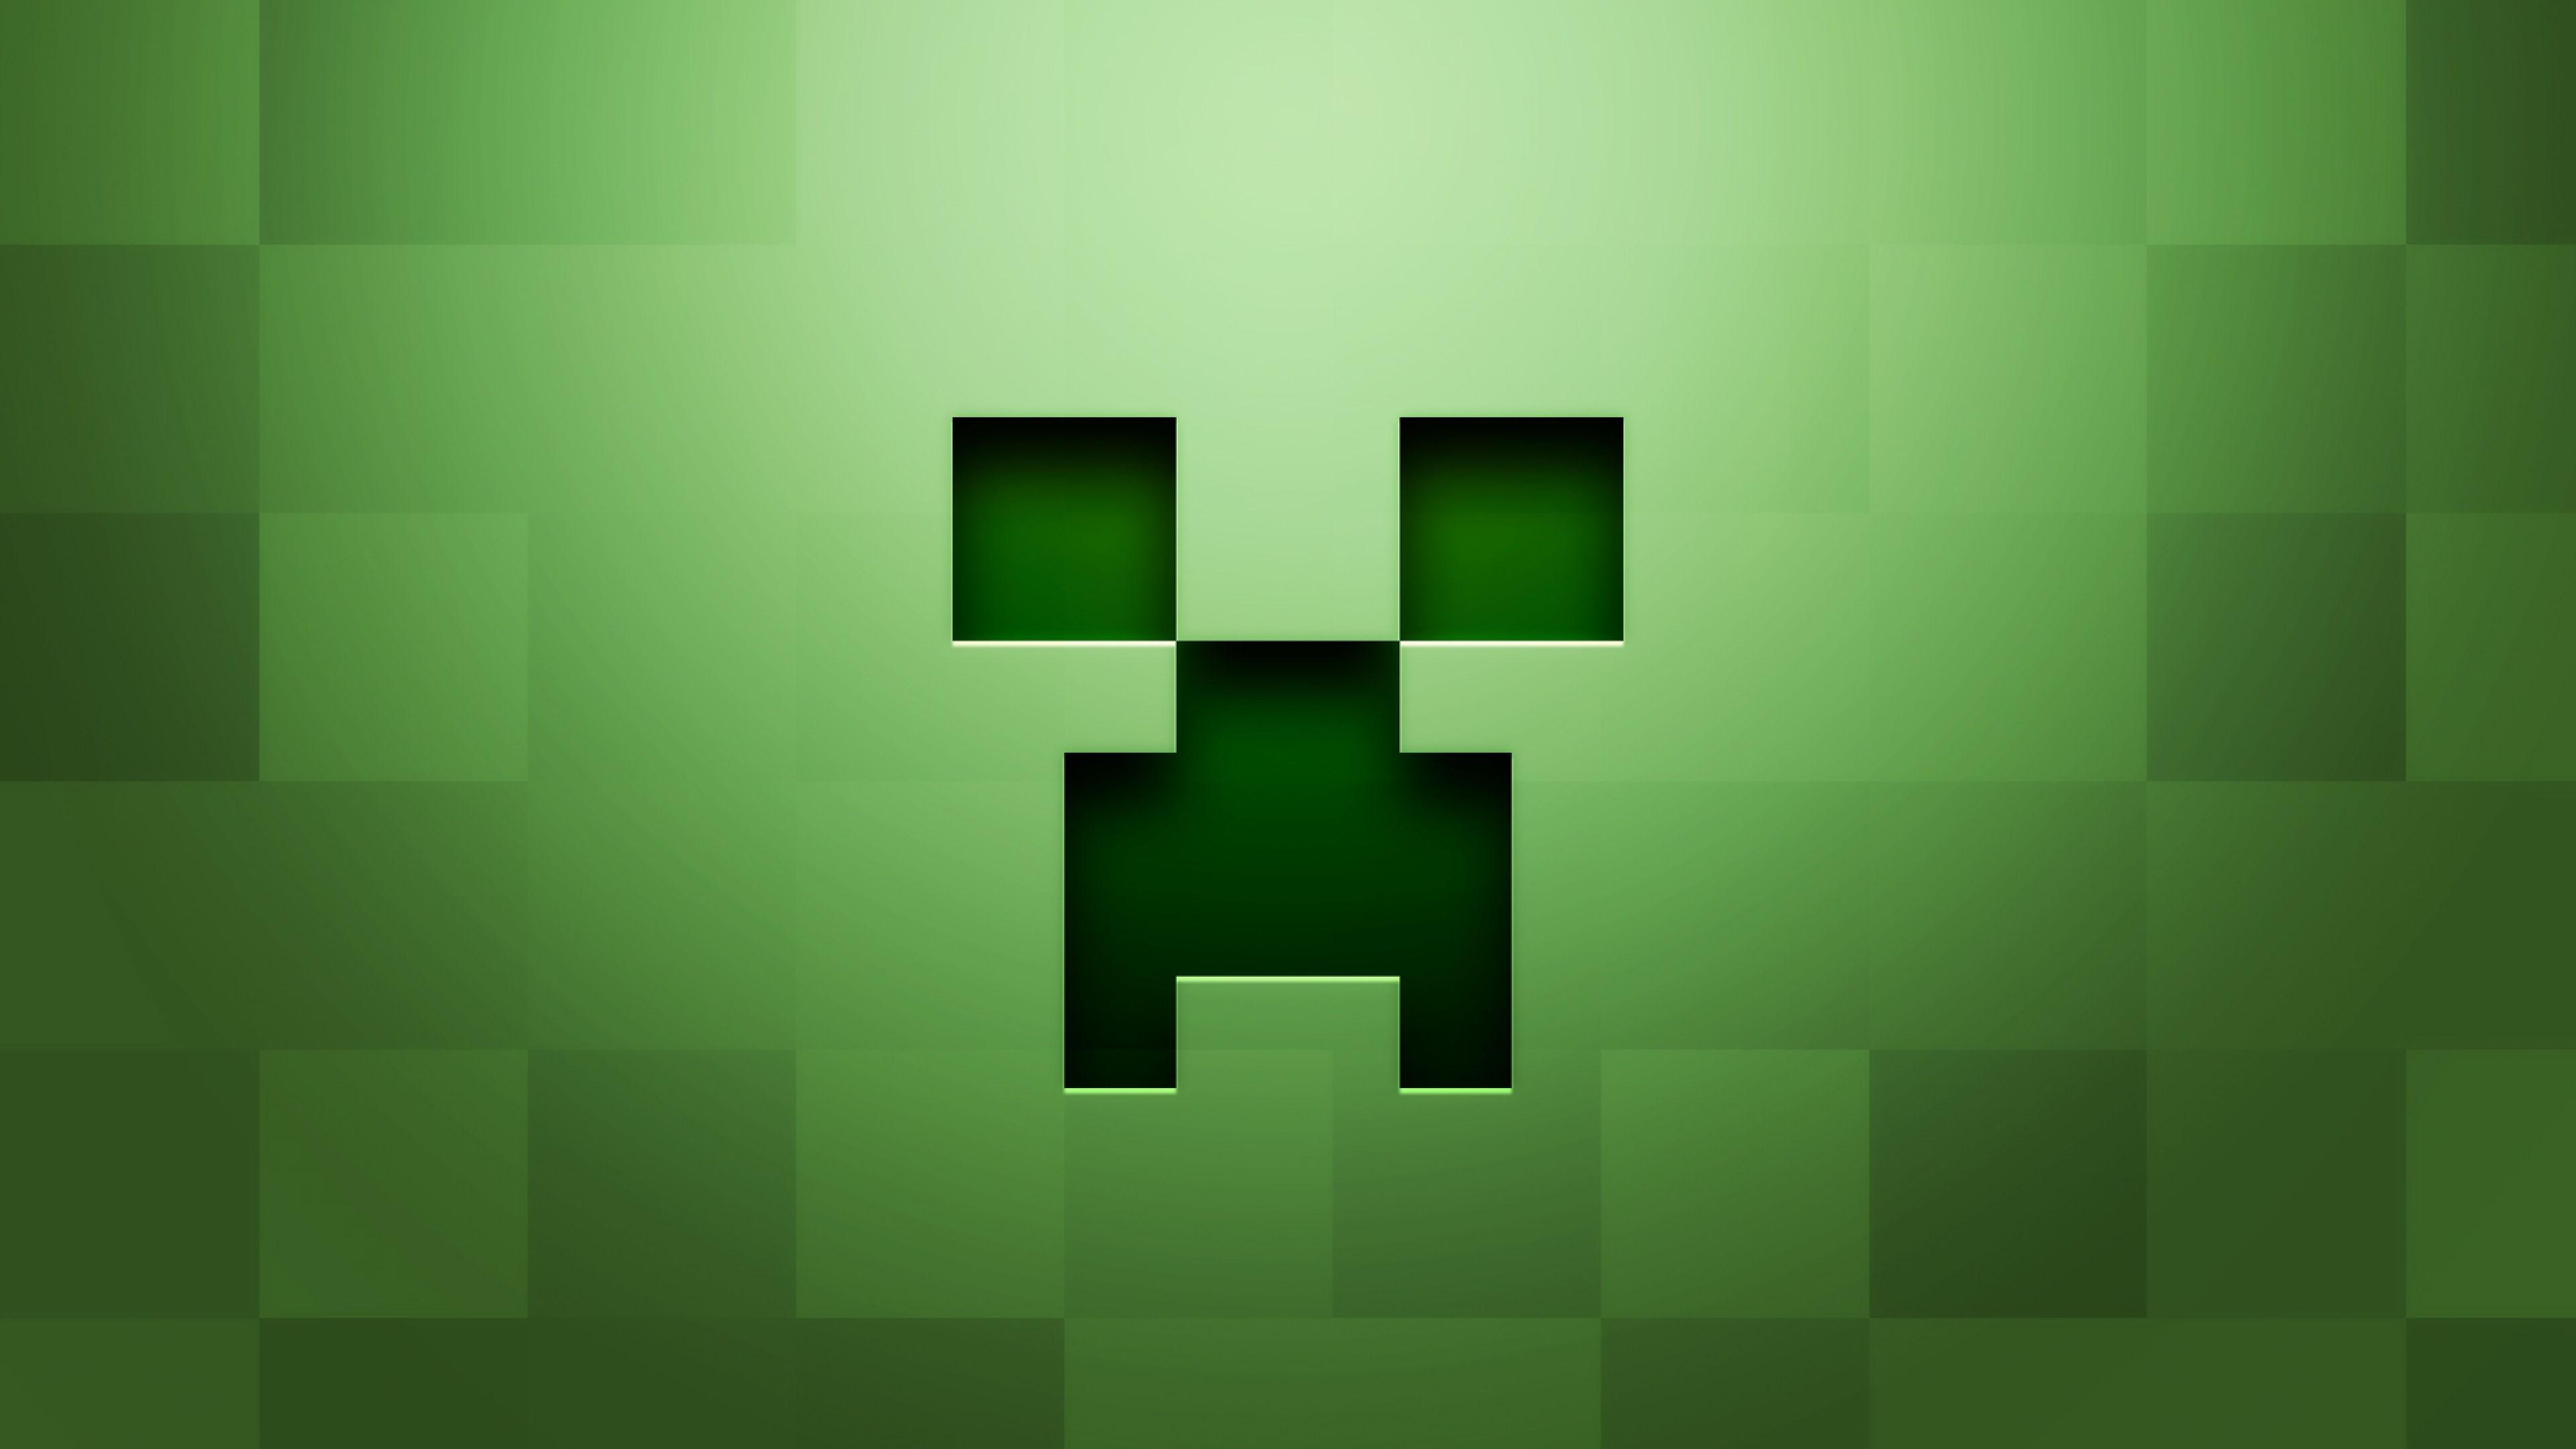 3840x2160 Wallpaper Minecraft Background Graphics Green